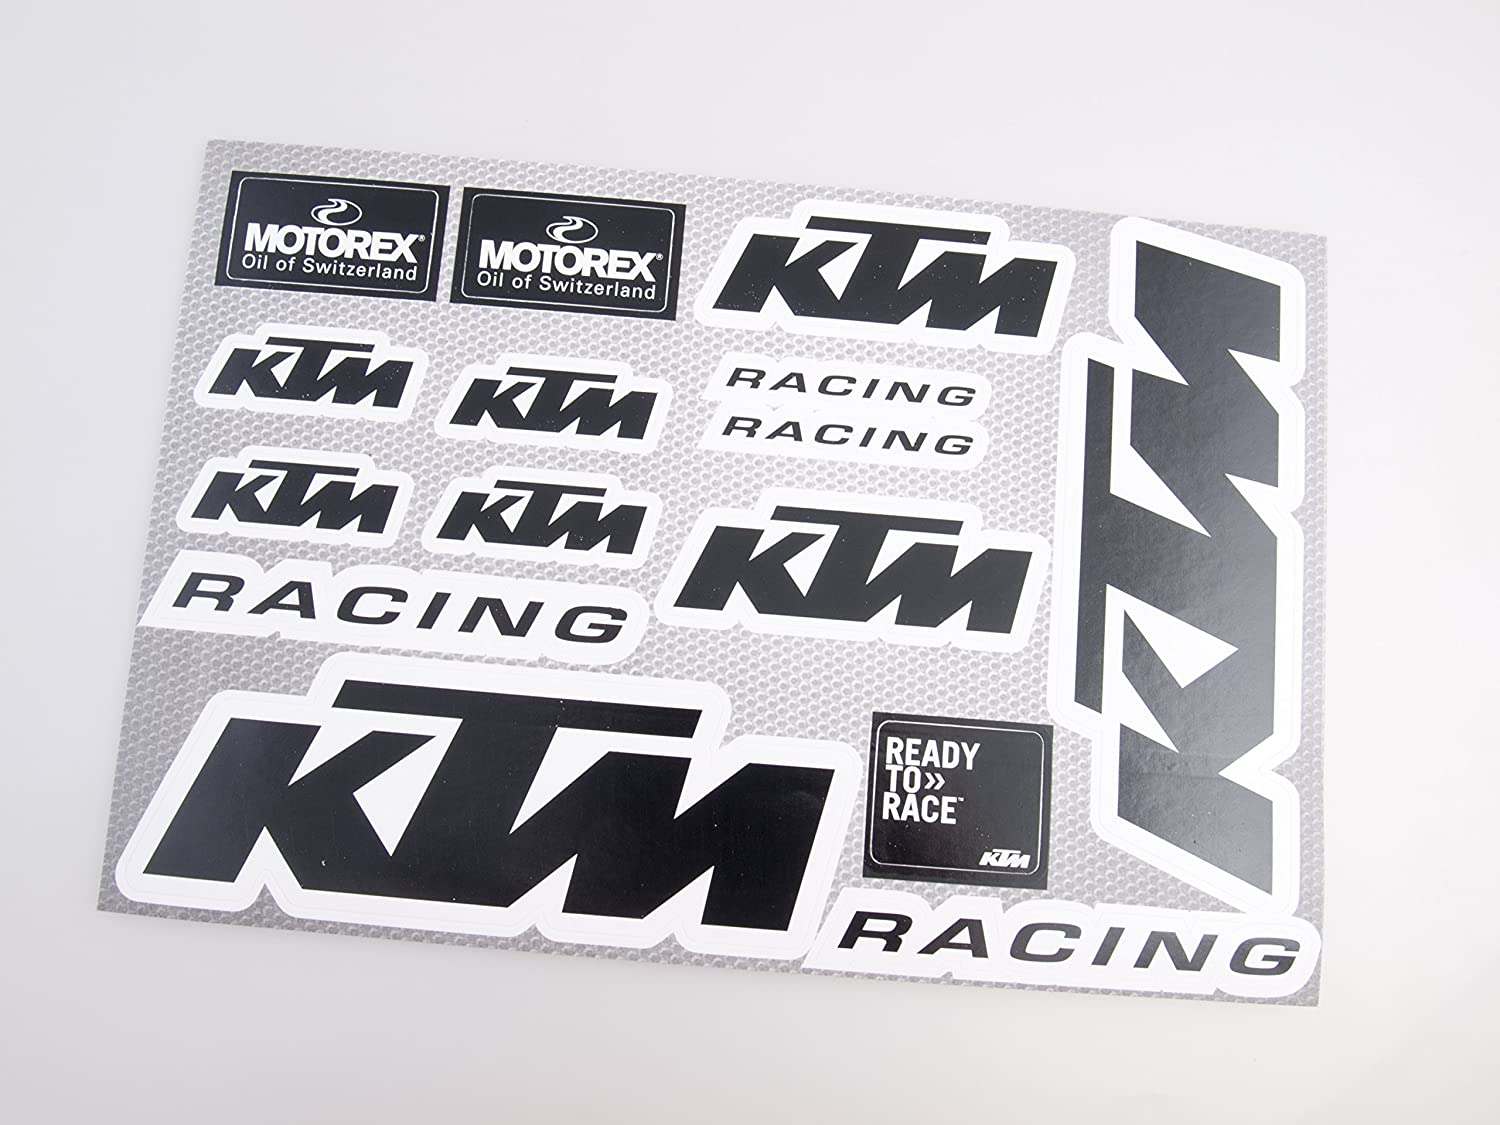 KTM Motorcycle Decals Stickers Motocross Bike 20x30cm 15pcs on one sheet (Black) Life Decor CC033BLACK